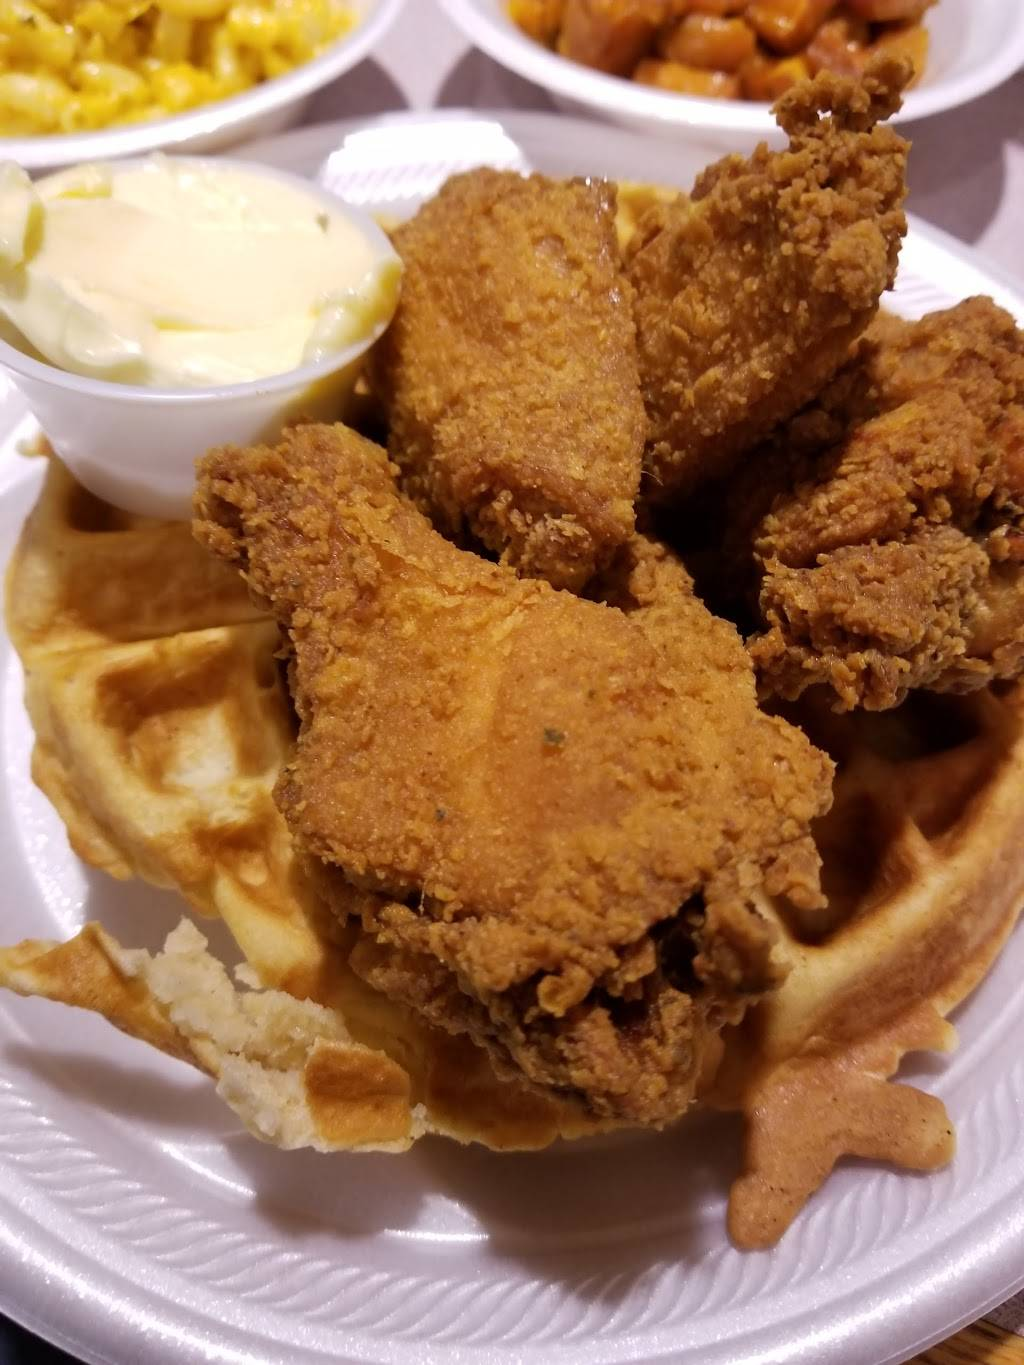 Vells-Soul Food with a Twist | restaurant | 515 S Main St, Kannapolis, NC 28081, USA | 7049328357 OR +1 704-932-8357